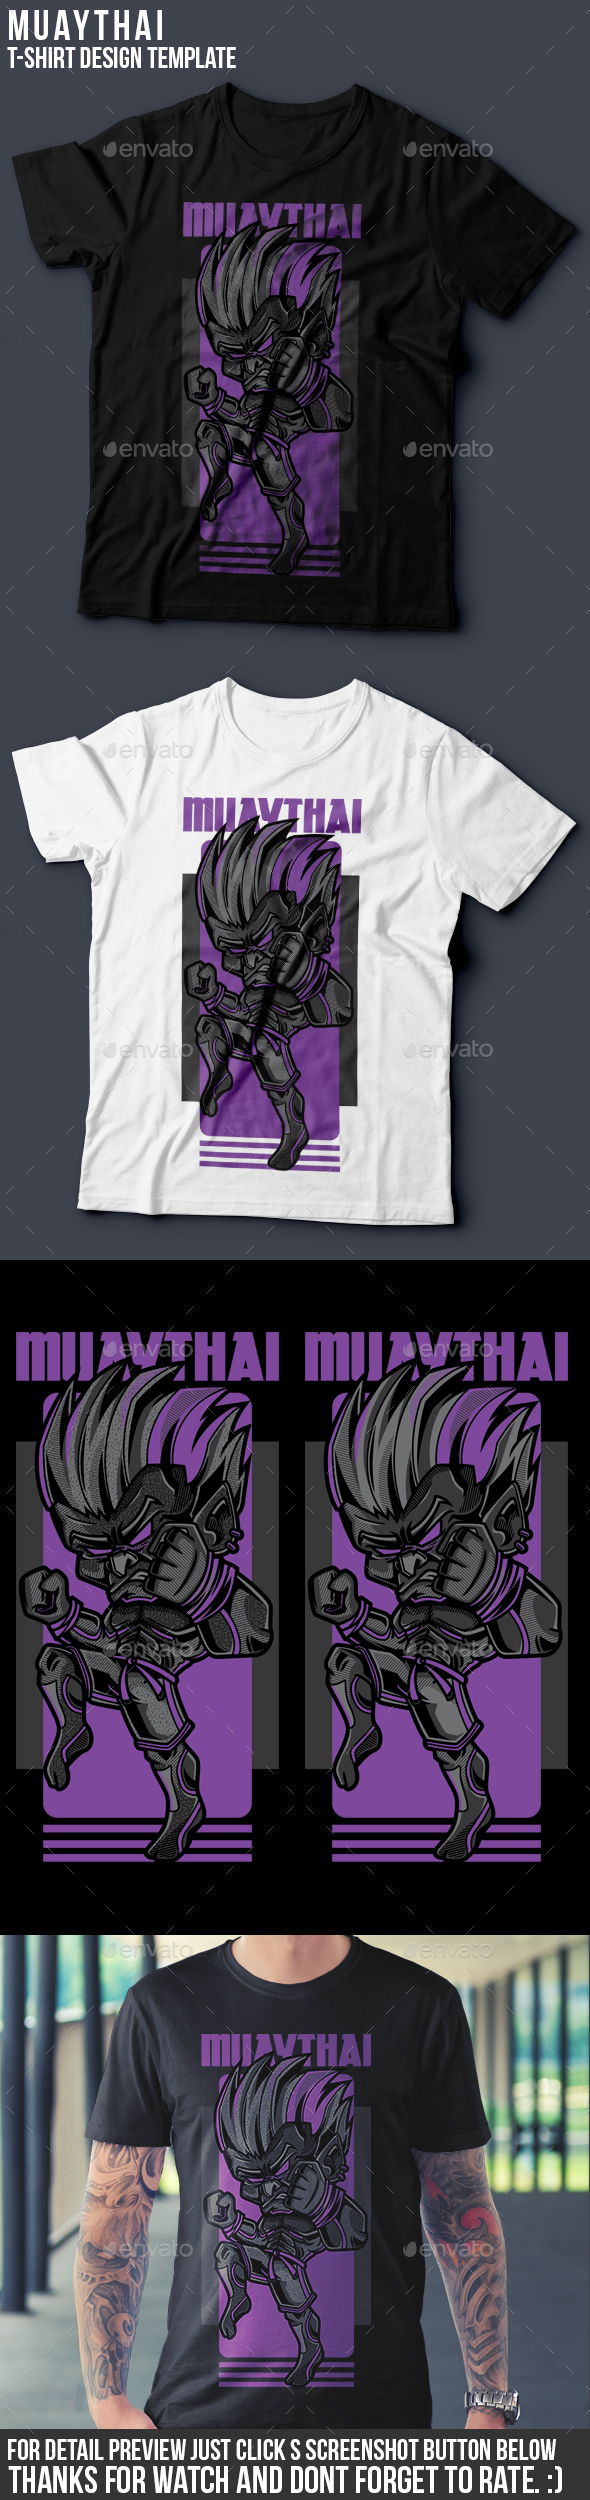 Muay Thai T-Shirt Design - Sports & Teams T-Shirts